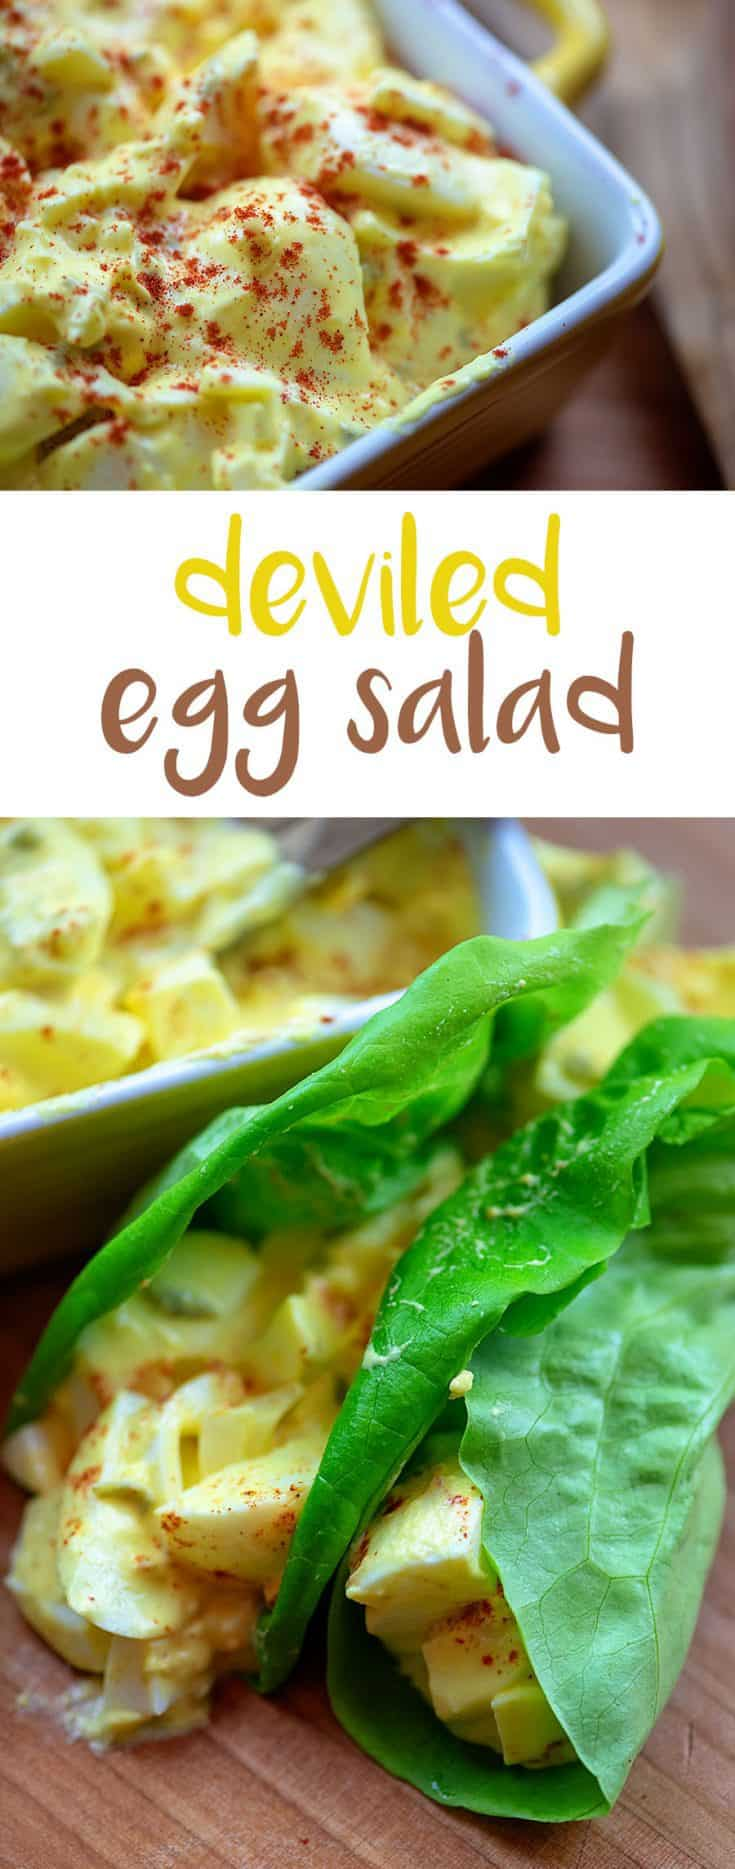 Deviled Egg Salad - low carb, keto friendly, and makes the perfect lunch! #lowcarb #eggsalad #lunchrecipe